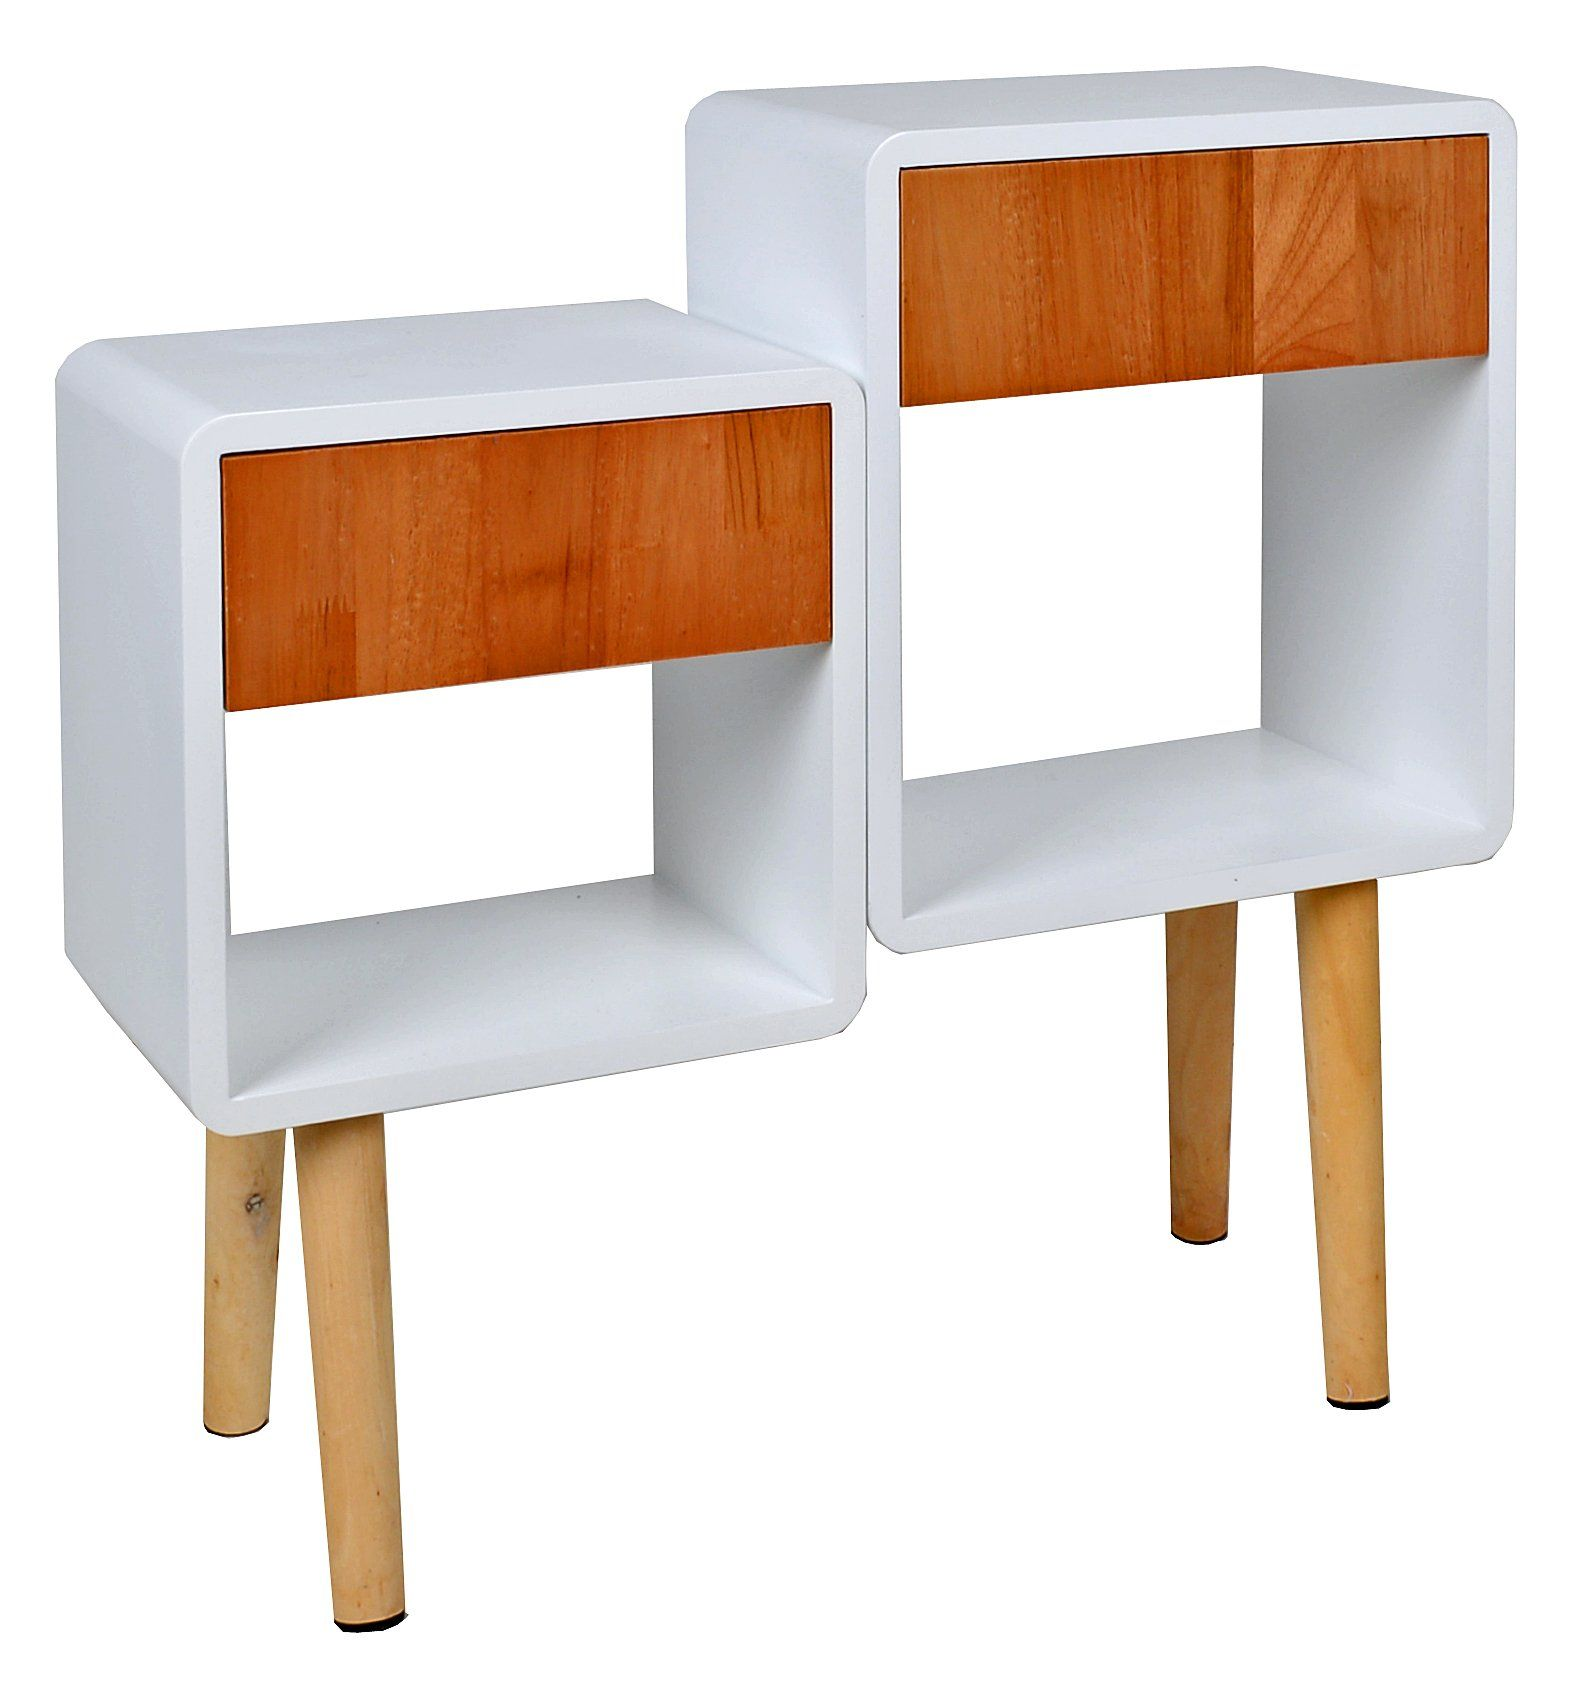 Nachttisch Schrank Fr  Finest Affordable Donald Duck Nachttisch Grau     latest beautiful tsideen regal schrank kommode im cube retro design fr  wohnzimmer bad nachttisch with nachttisch retro with nachttisch schrank fr